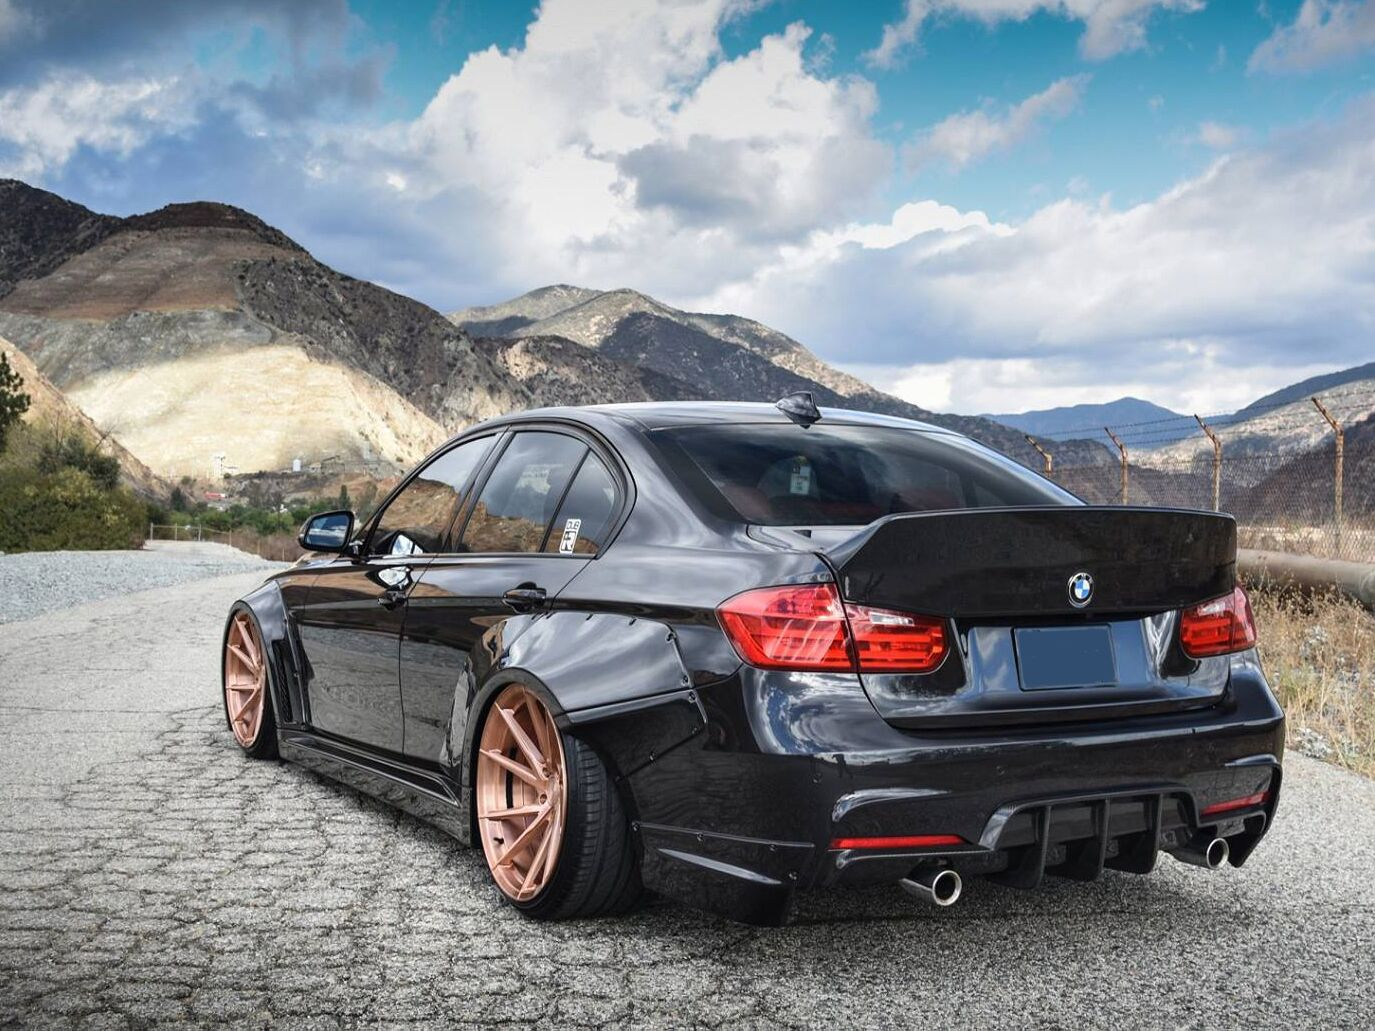 Clinched Flares Ducktail Spoiler For Bmw 3 Series F30 Built Not Bought Automotive